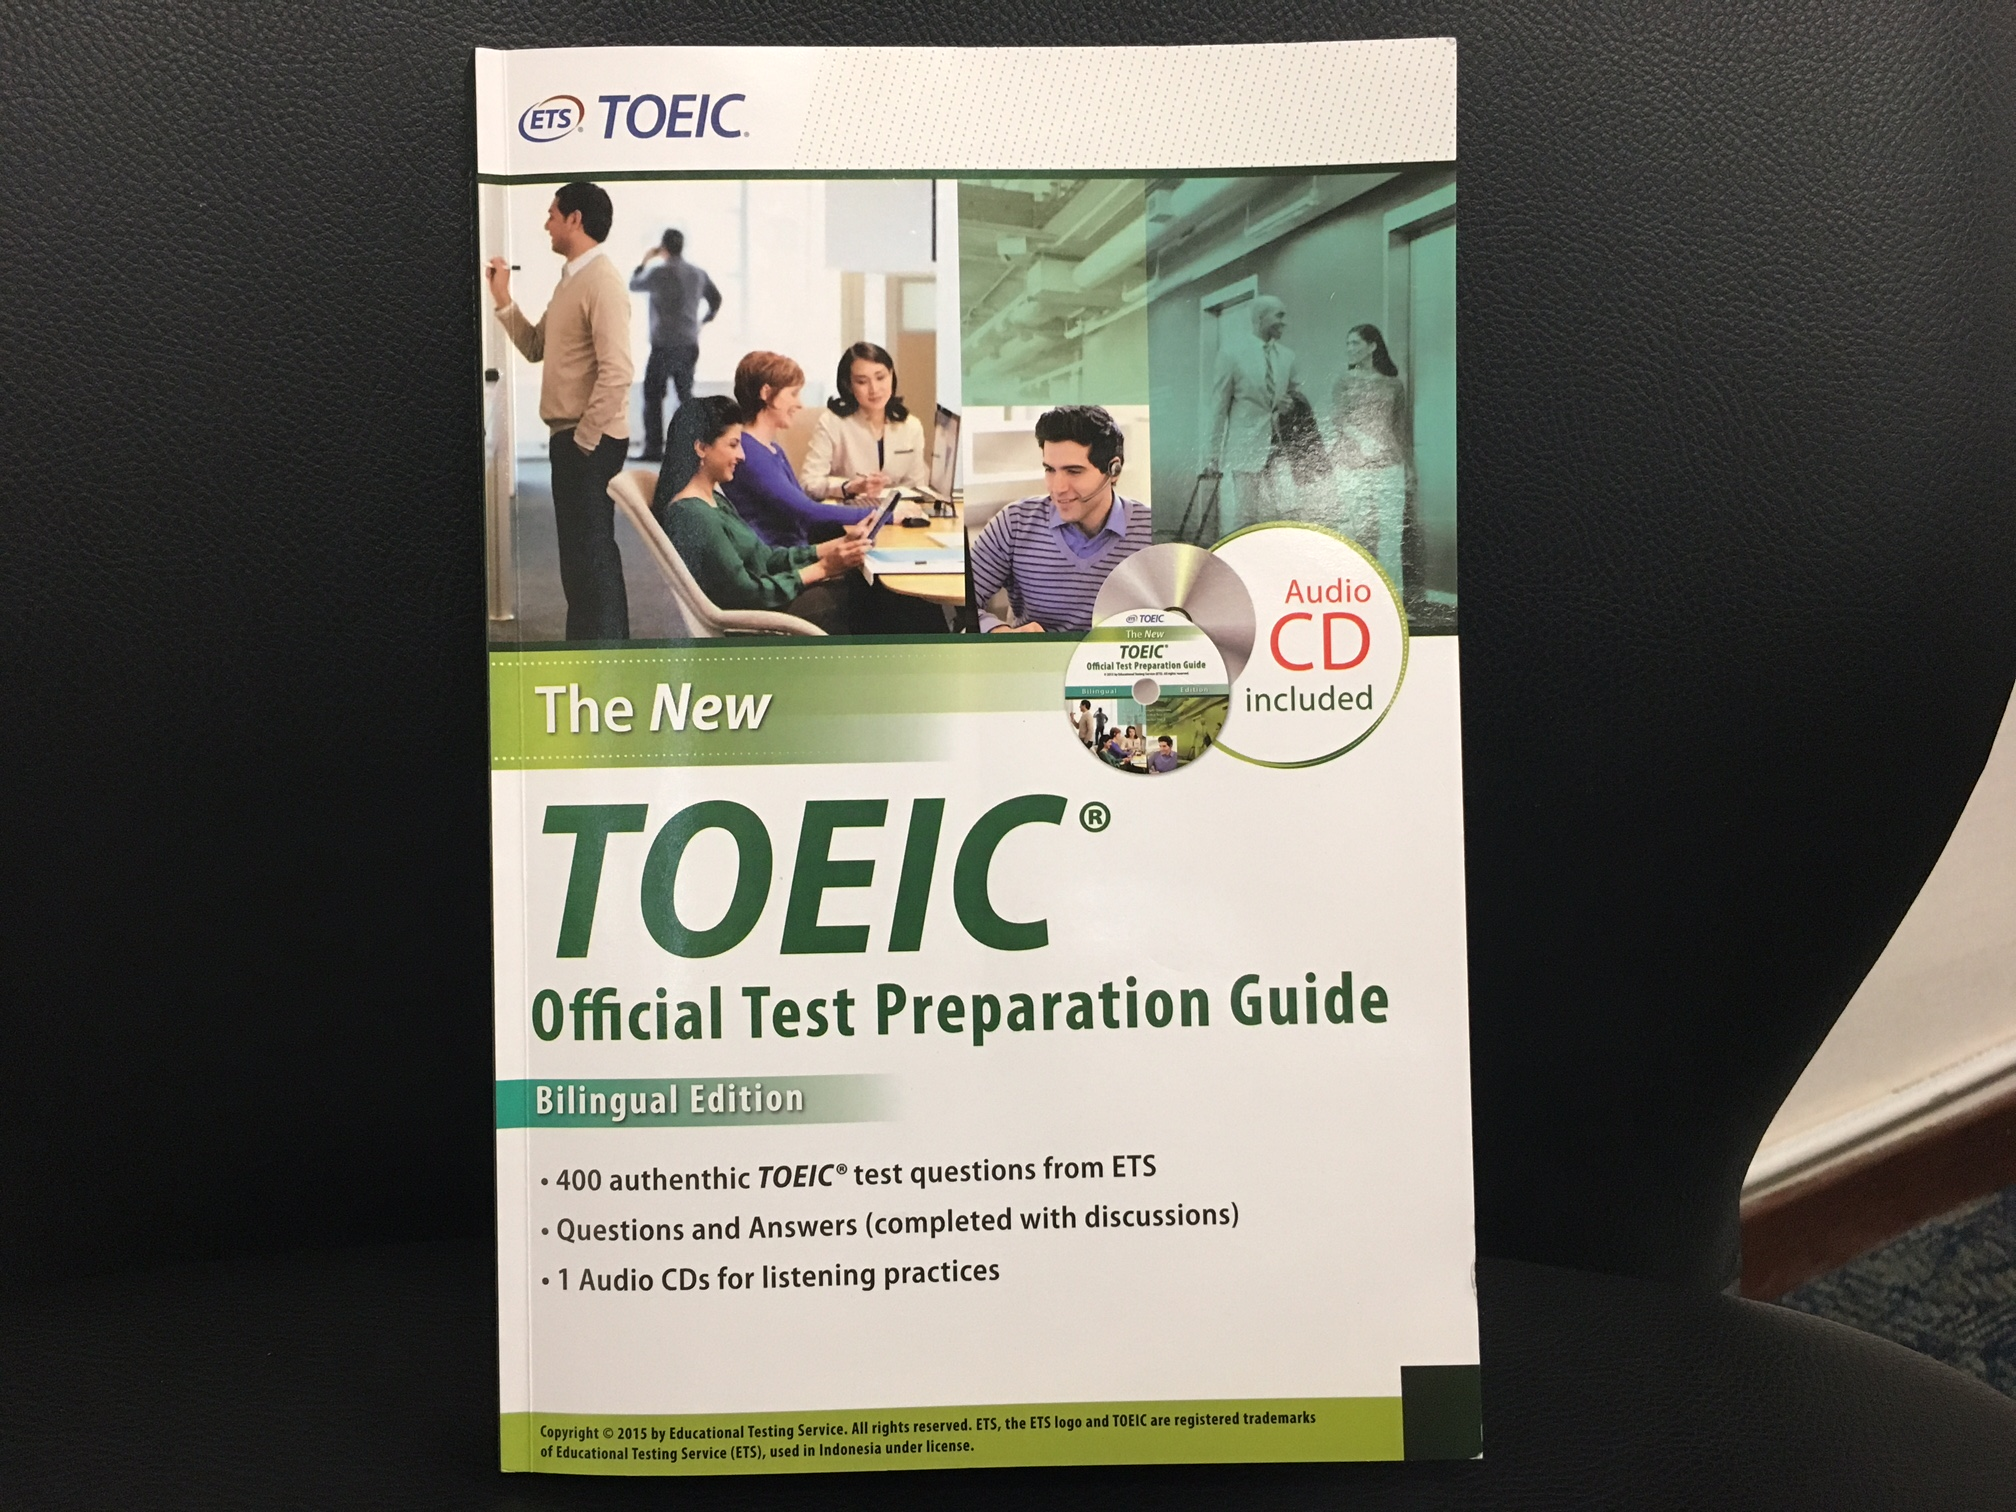 """The New TOEIC Official Test Preparation Guide""の感想・レビュー"